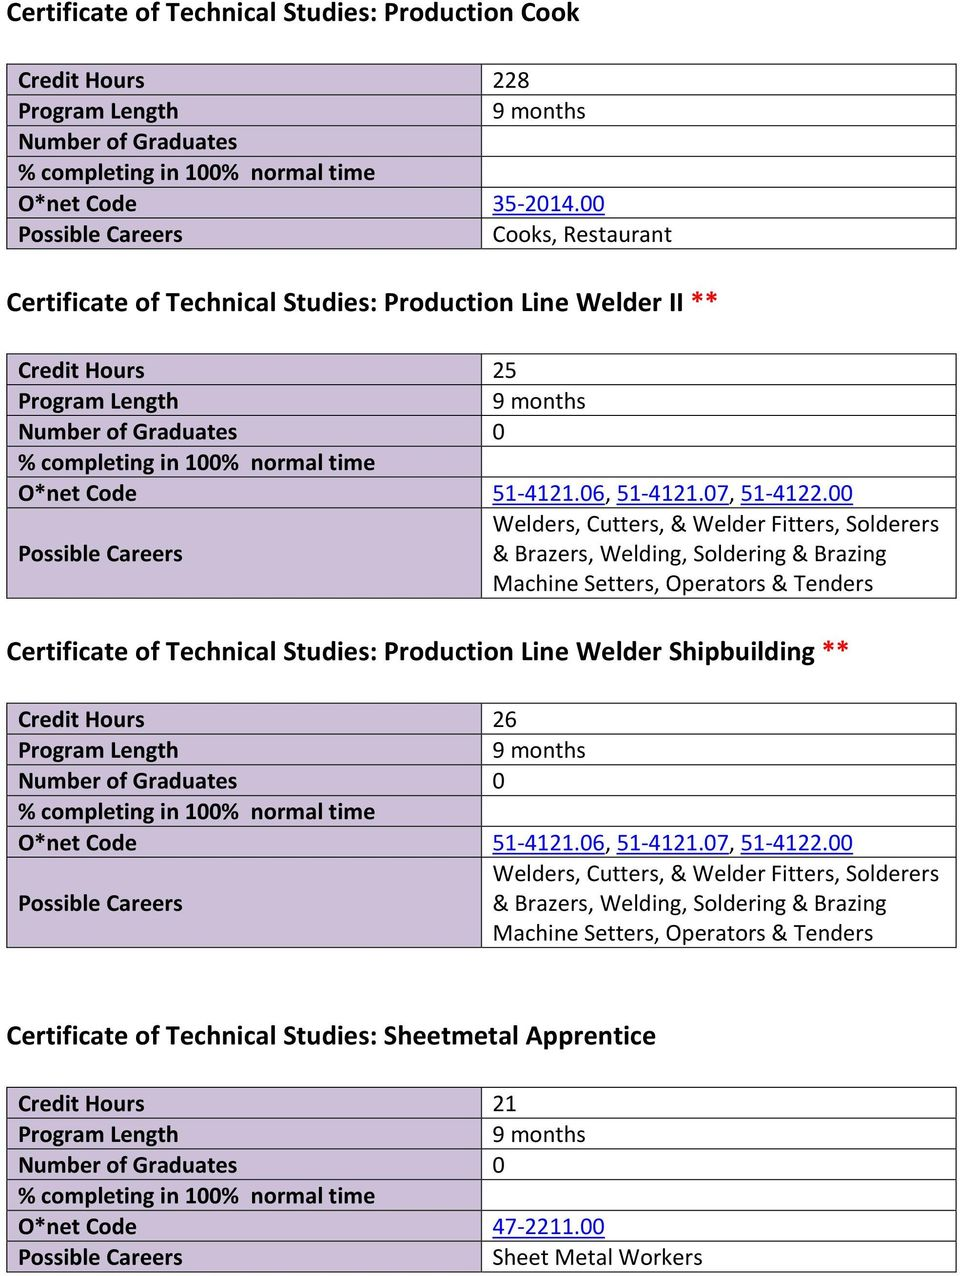 00 Welders, Cutters, & Welder Fitters, Solderers & Brazers, Welding, Soldering & Brazing Machine Setters, Operators & Tenders Certificate of Technical Studies: Production Line